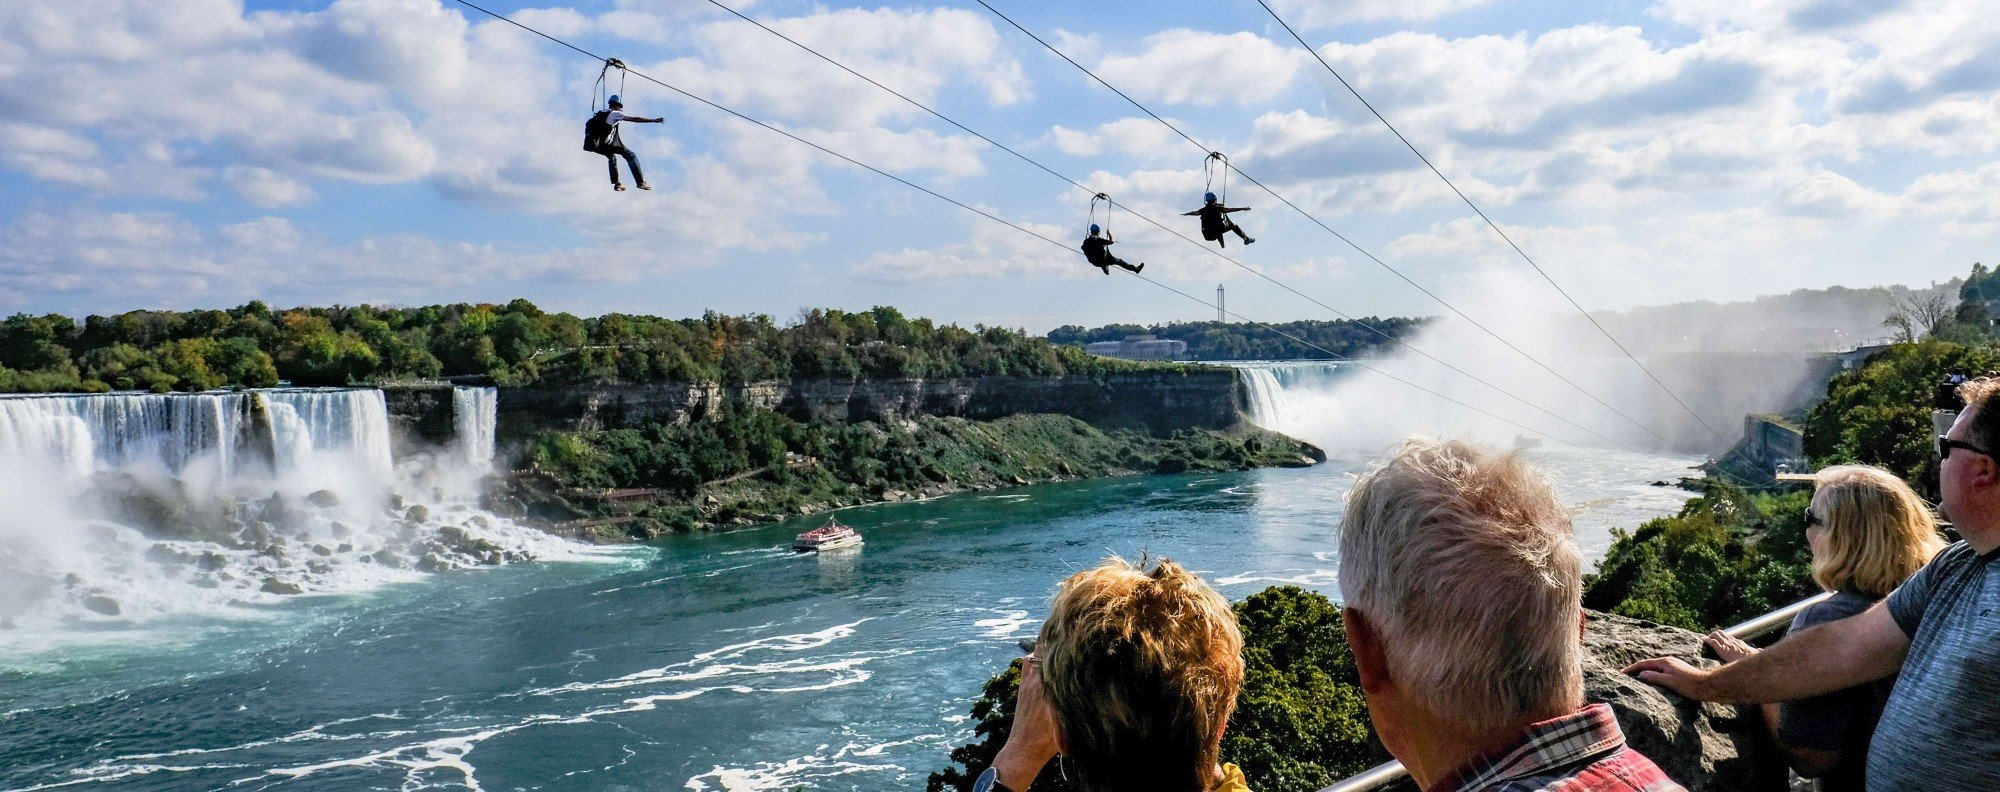 NIAGARA FALLS LIMO CAR TOUR:WORLD'S MOST BEAUTIFUL ATTRACTIONS